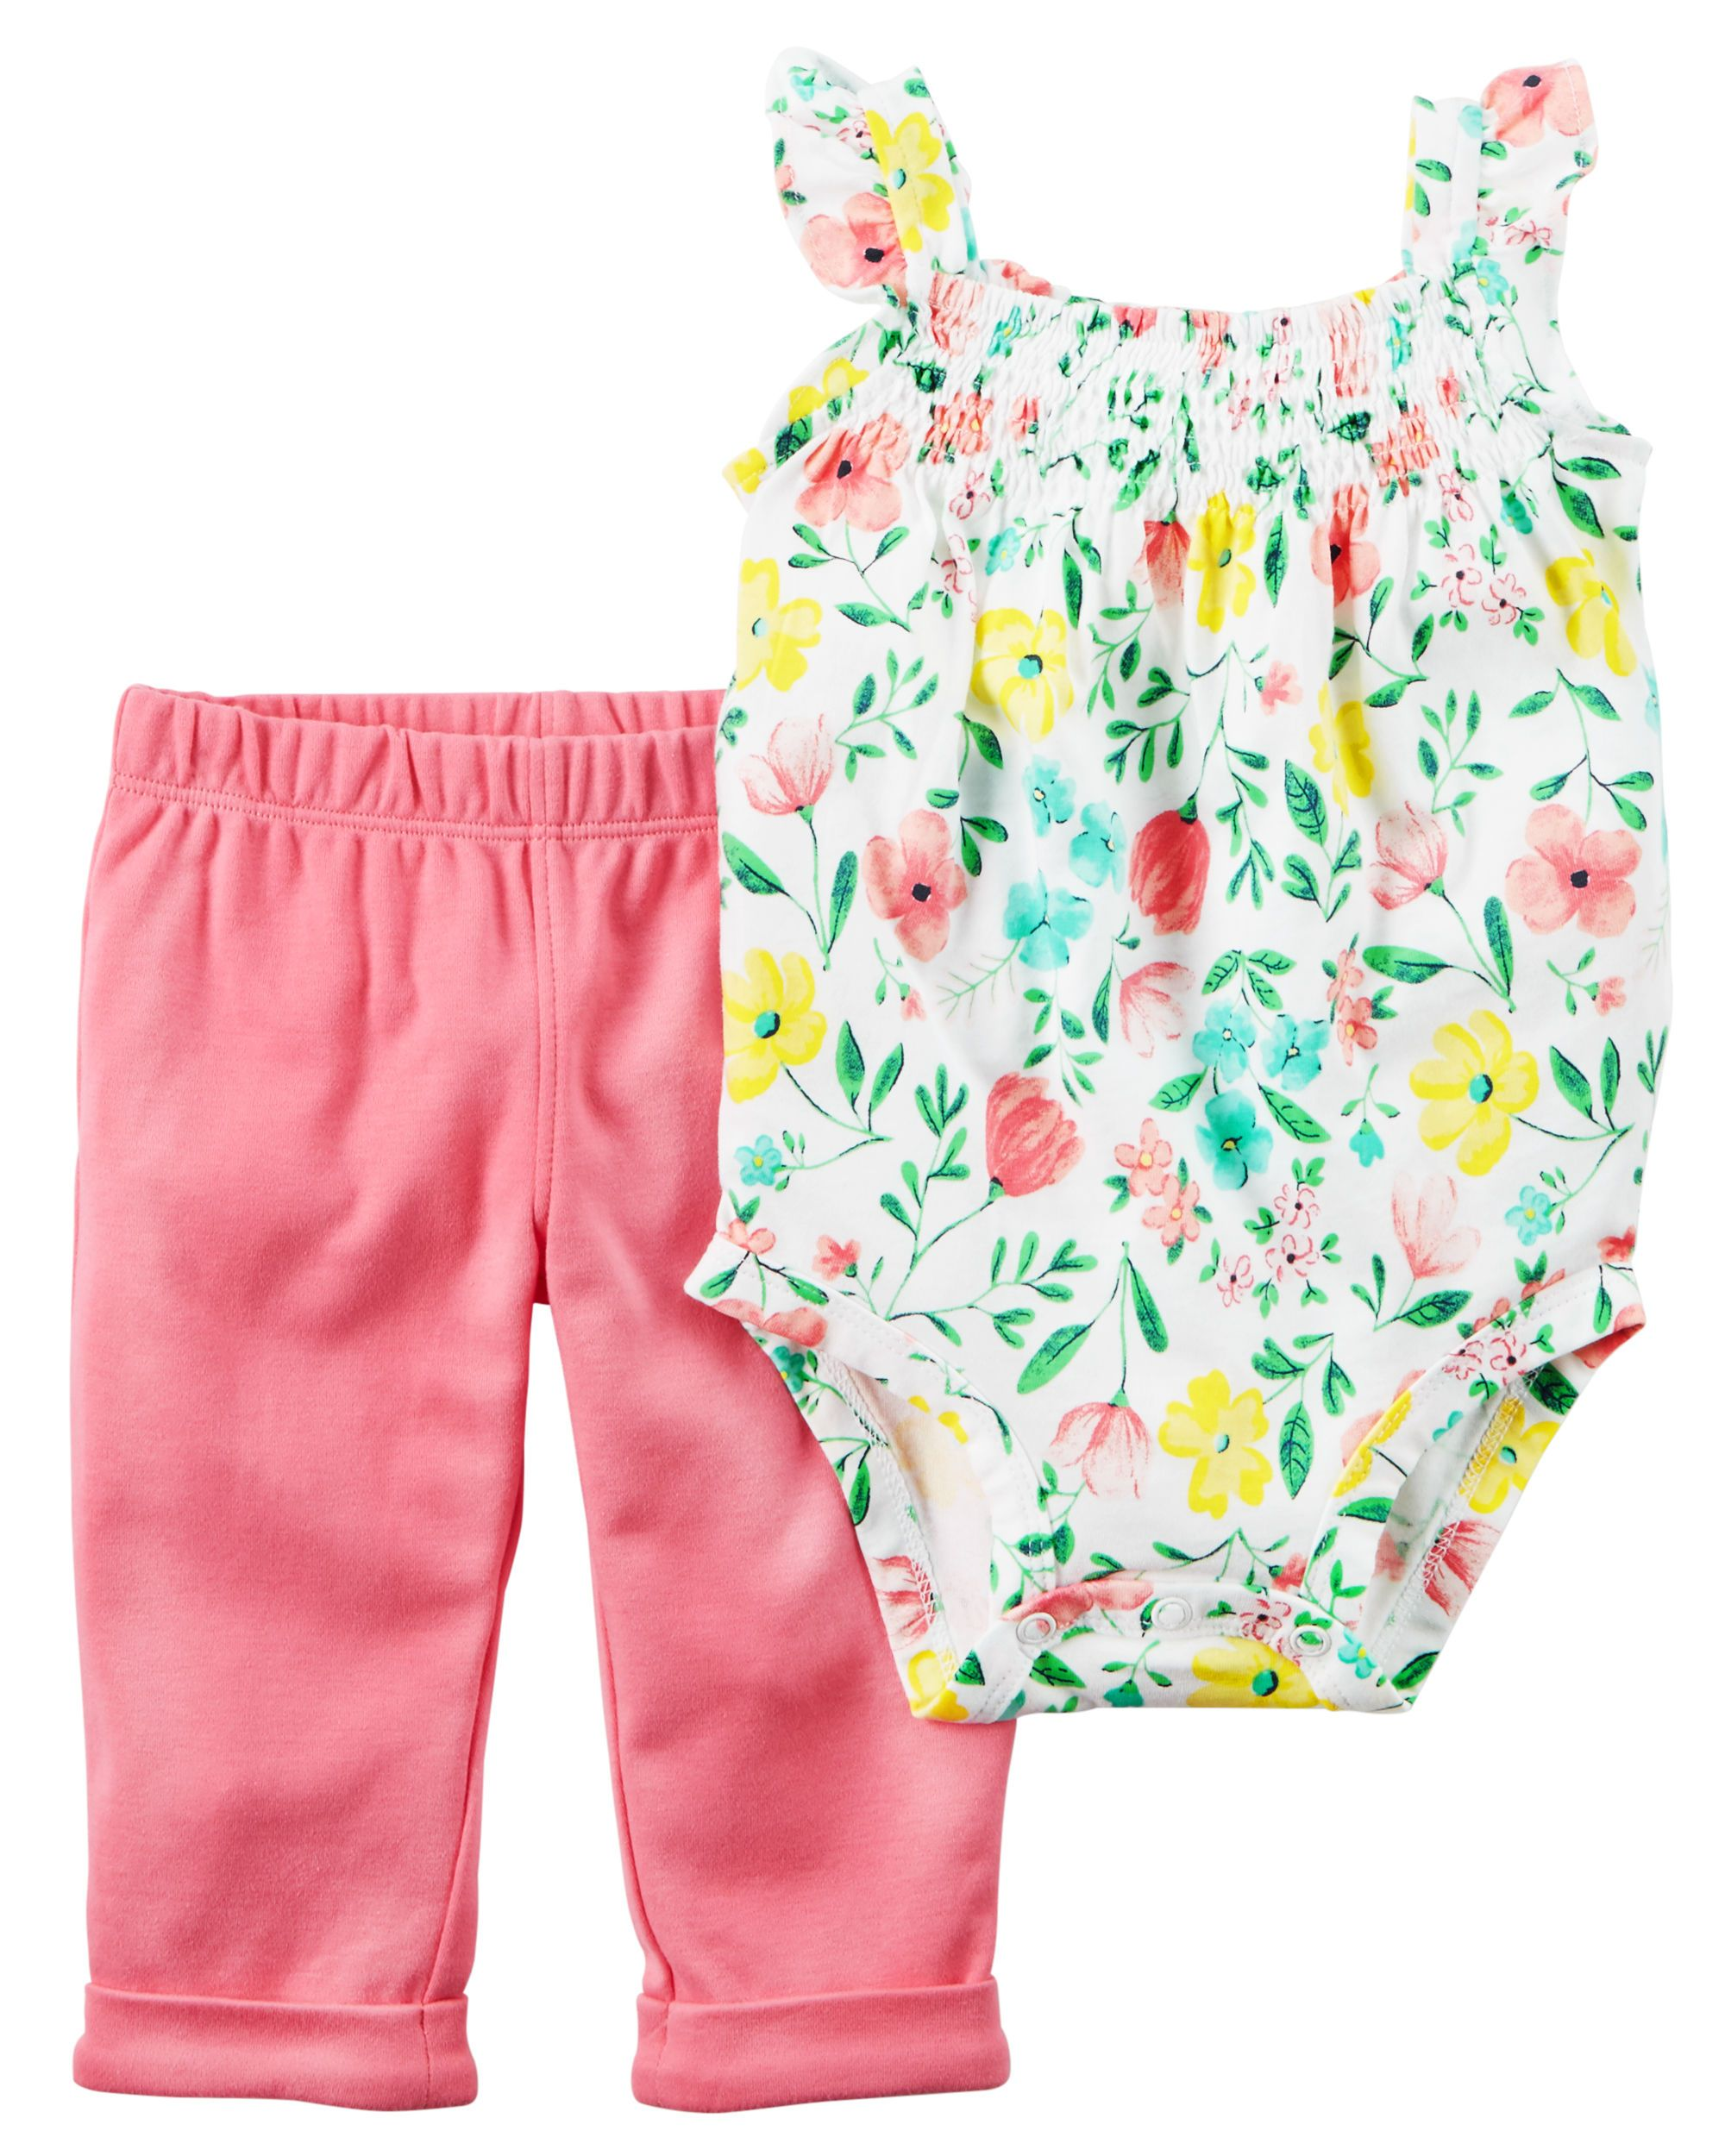 53cfcf3aef2d8 Baby Girl 2-Piece Bodysuit & Pant Set Crafted in super soft cotton, this  2-piece set keeps her cute and comfy for all-day play.